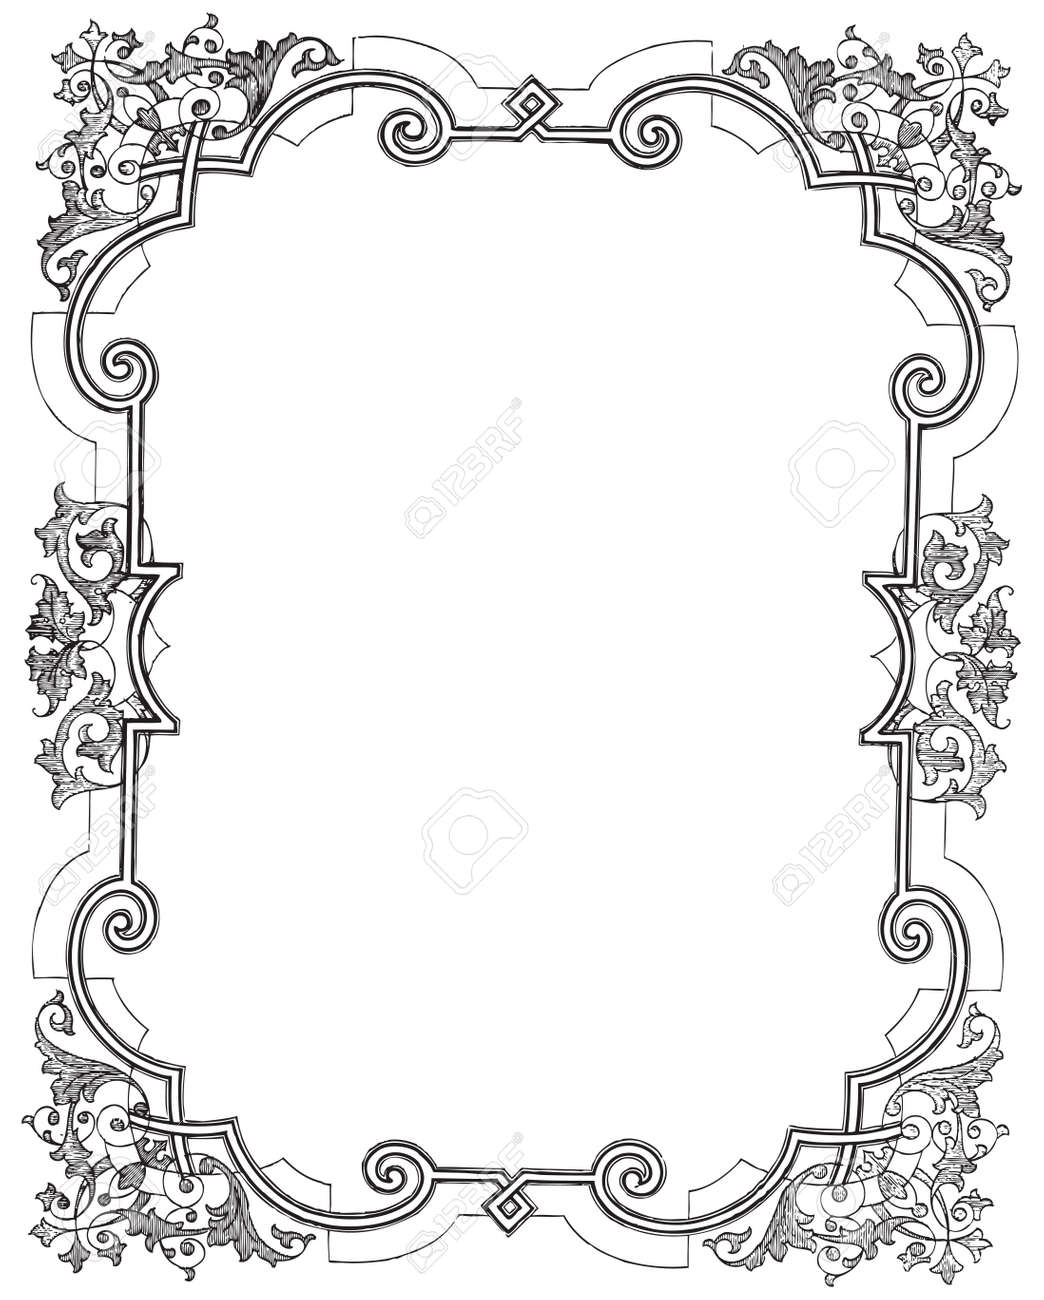 Ancient Style Engraving Of A Vintage Frame With Floral Decorations ...